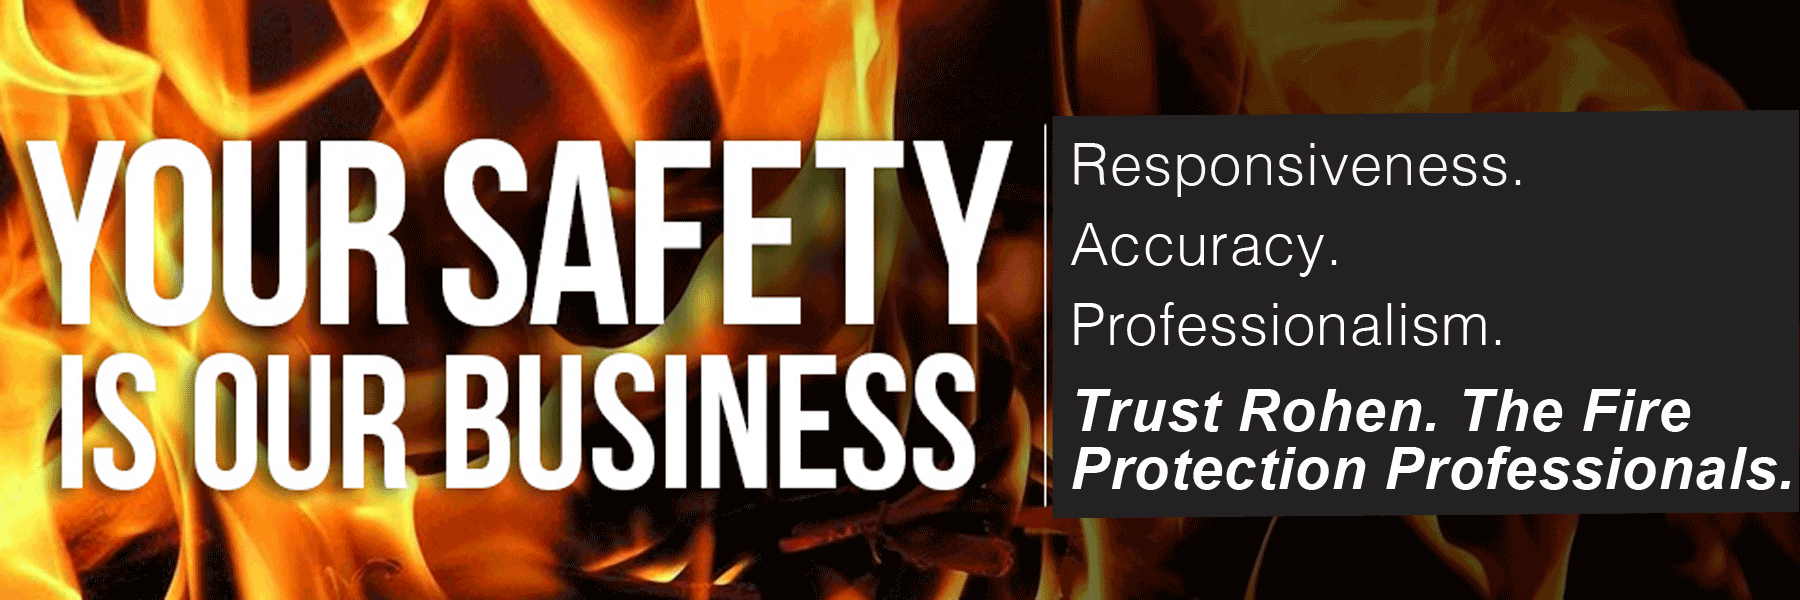 Rohen Fire Your Safety is Our Business